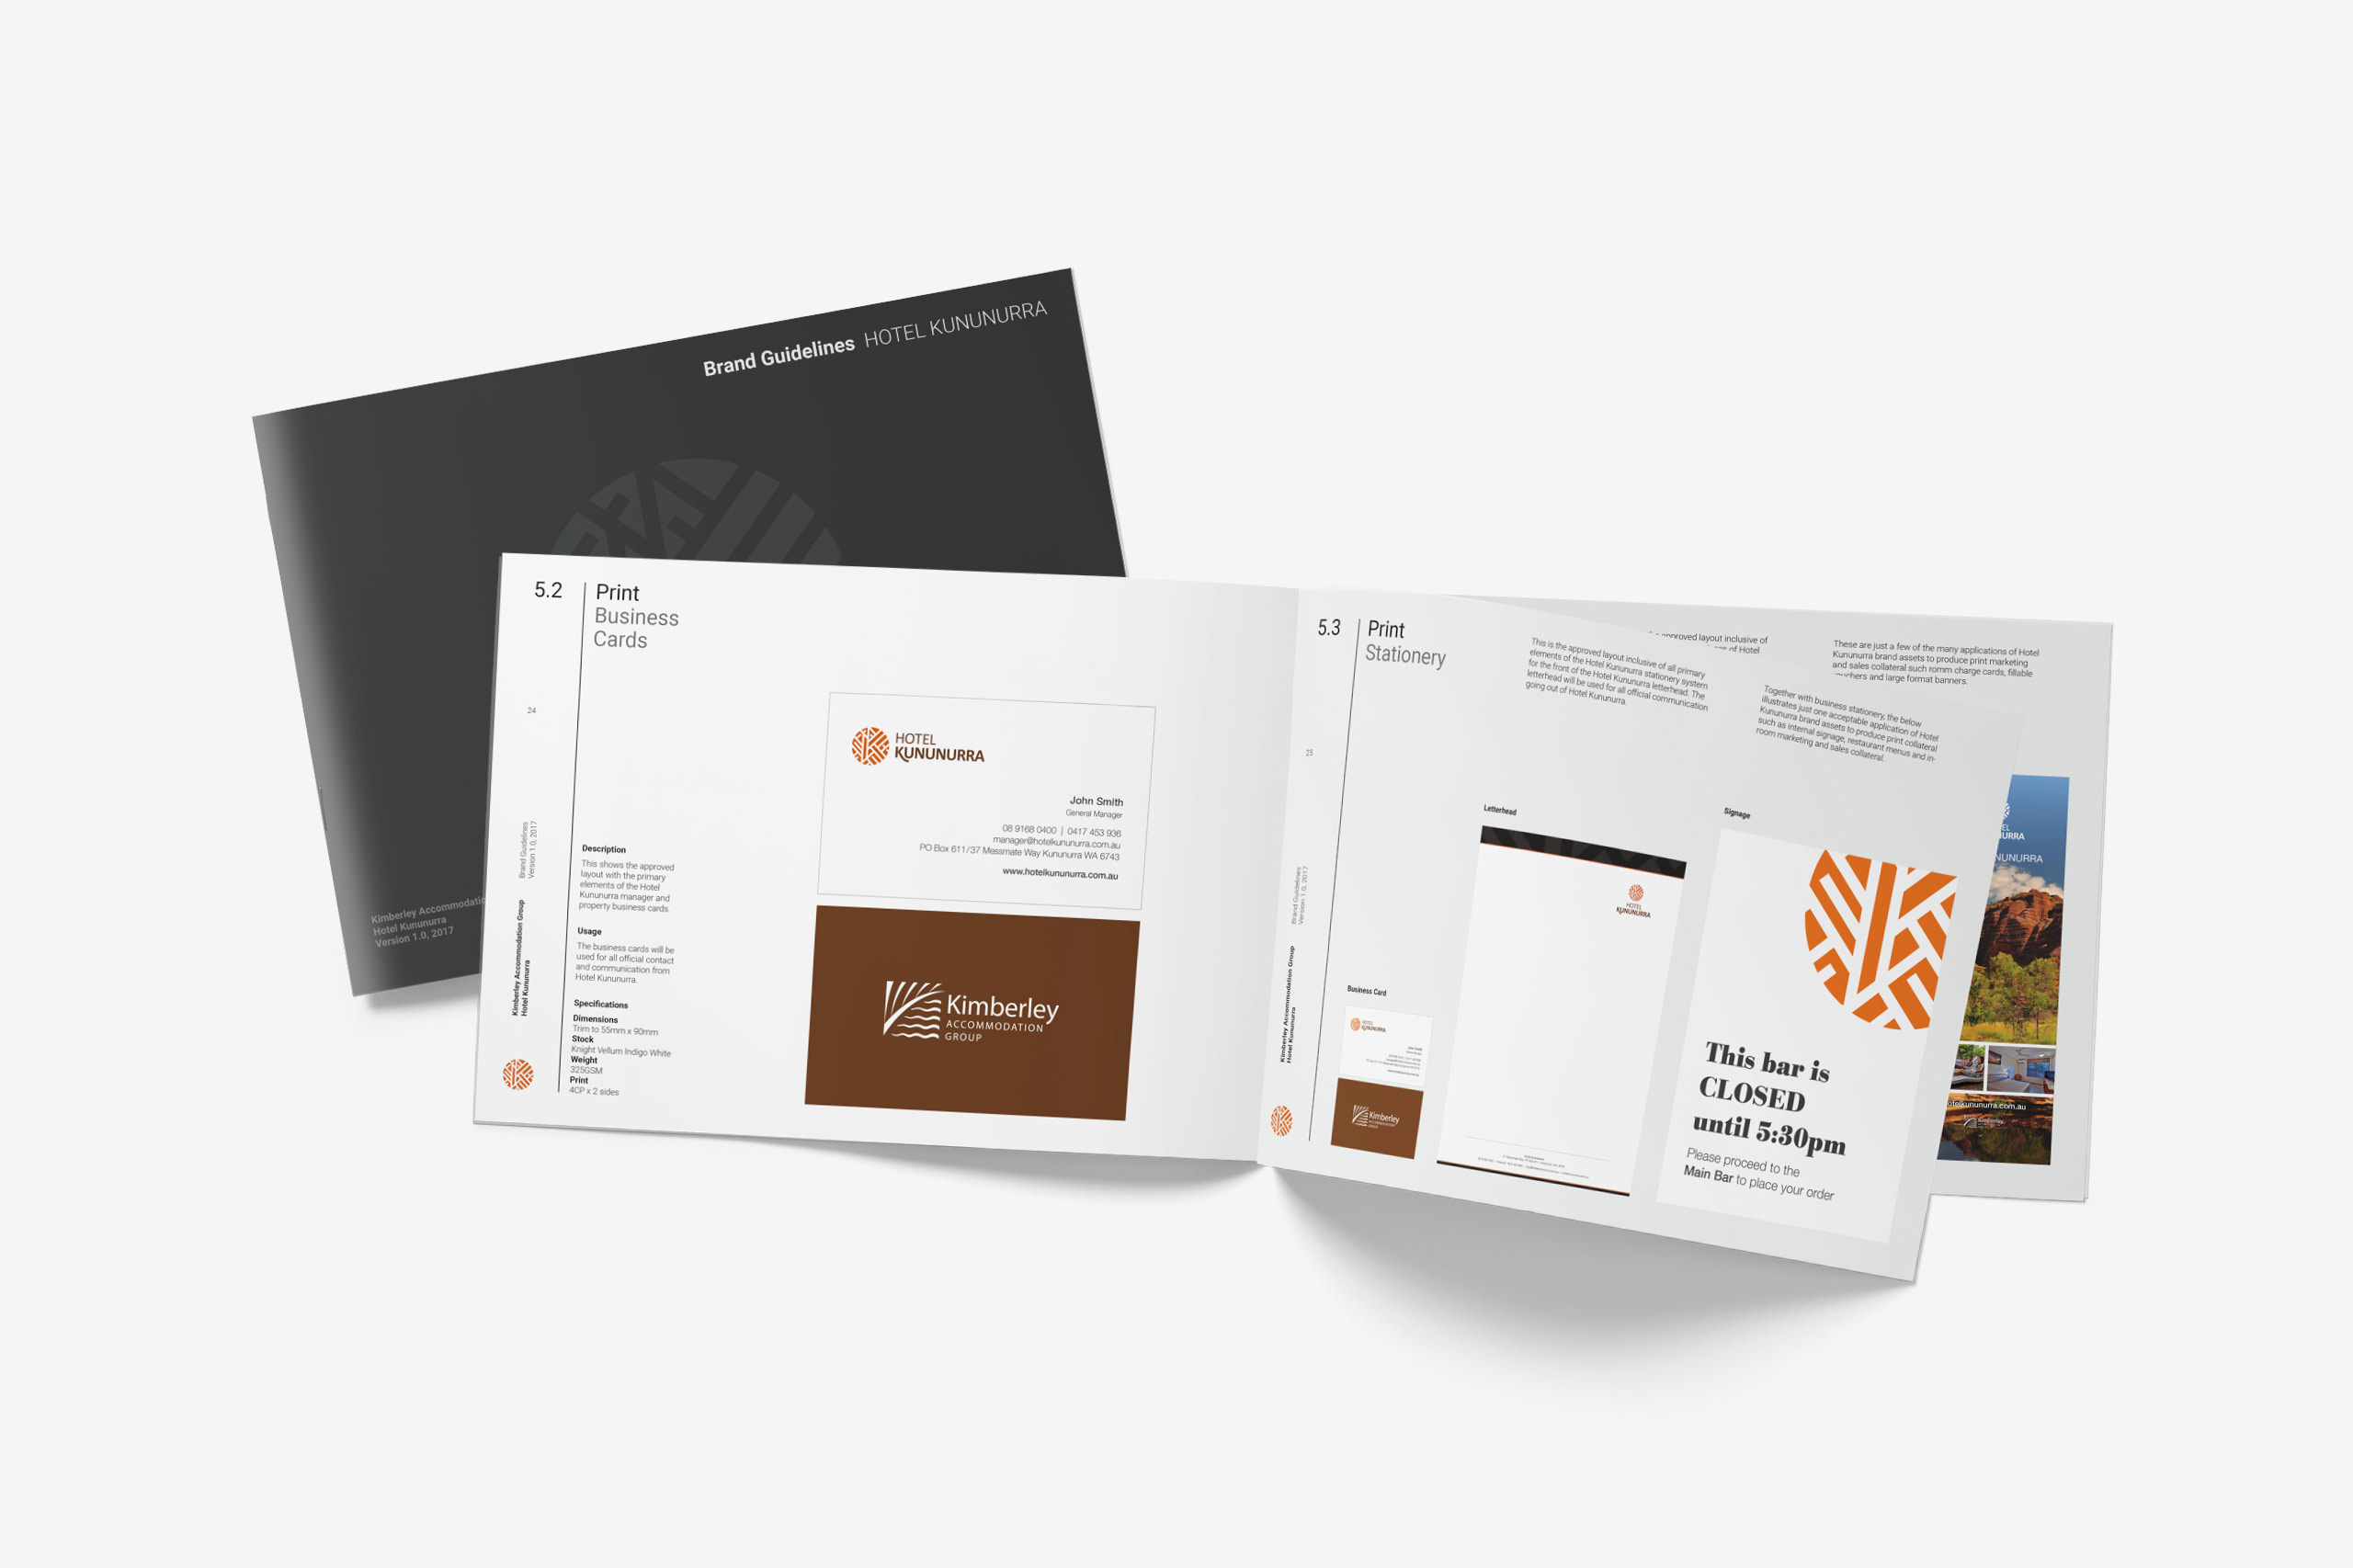 kimberley accommodation group brand guidelines maker and co design